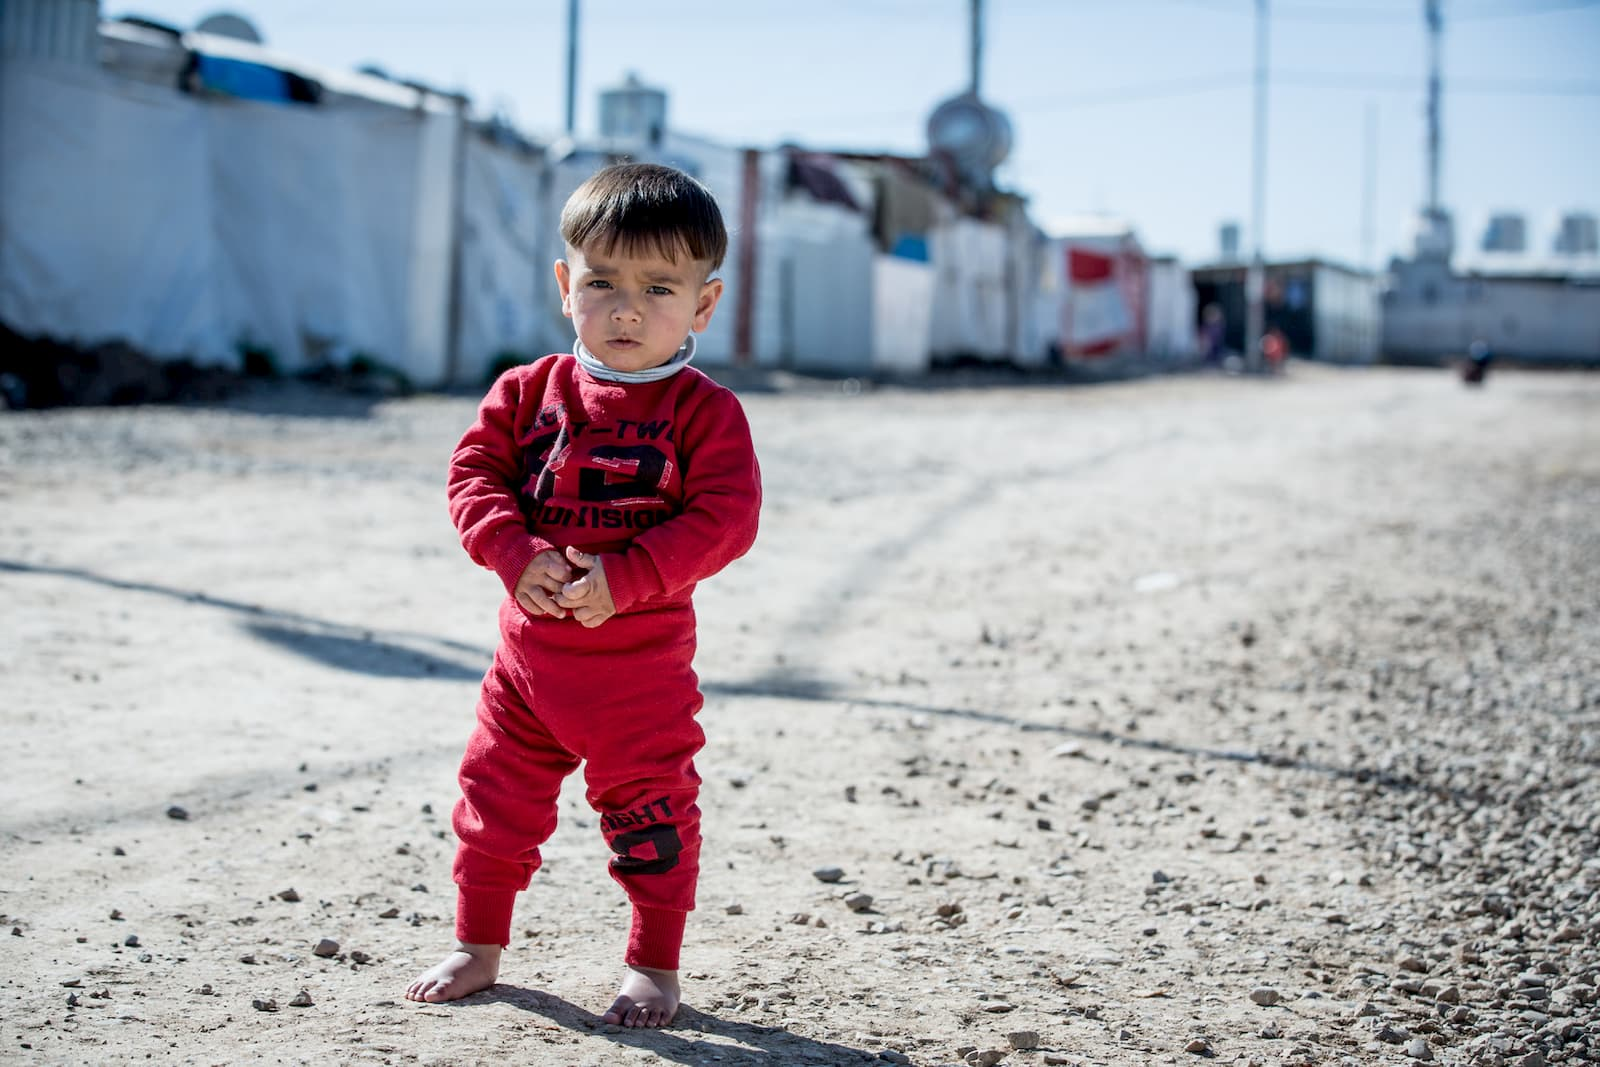 Yahya survives the winter thanks to UNICEF donors